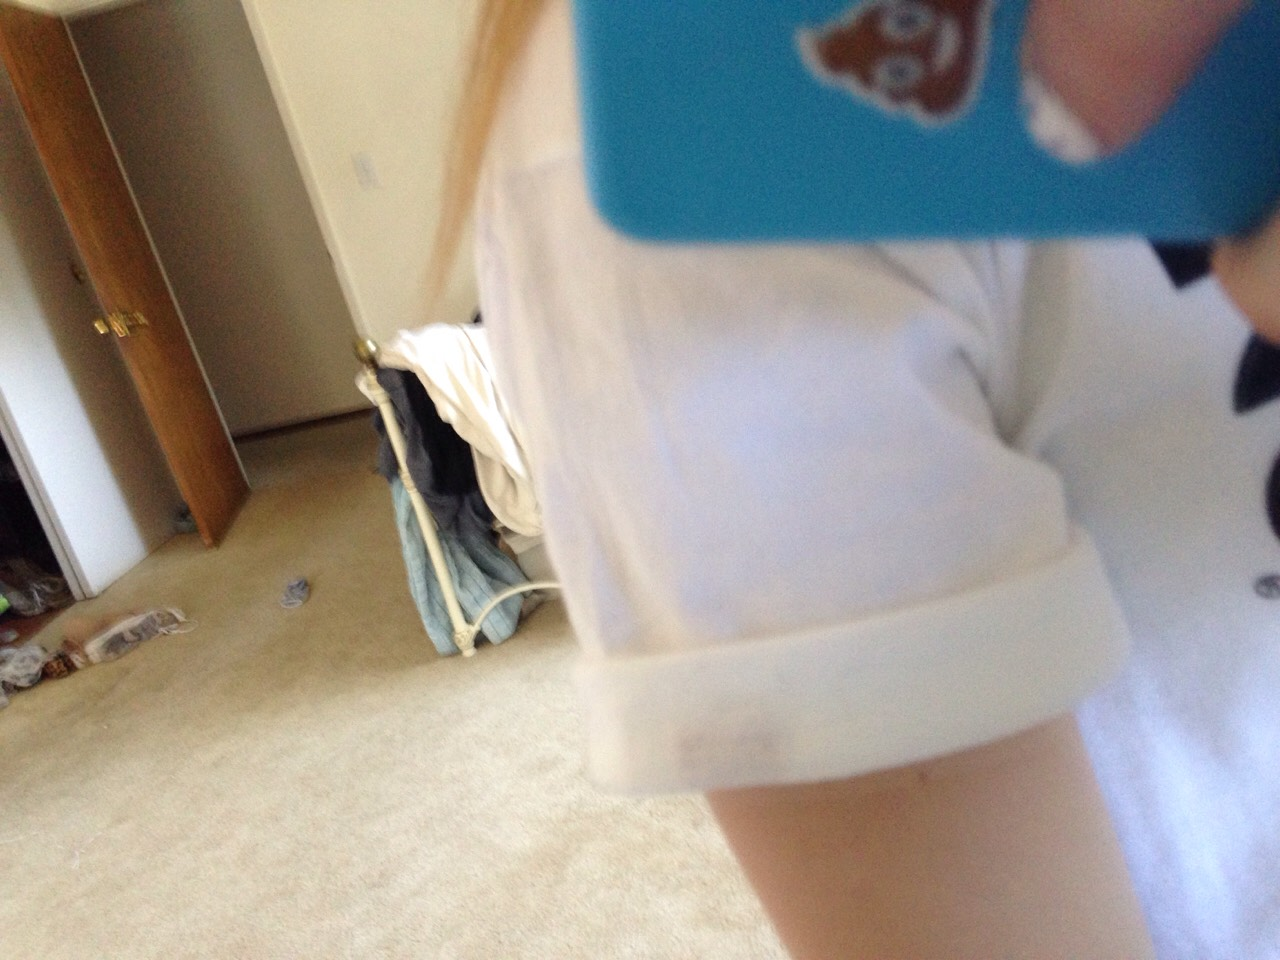 First role the sleeves up u can hold them there by sewing or even super glueing